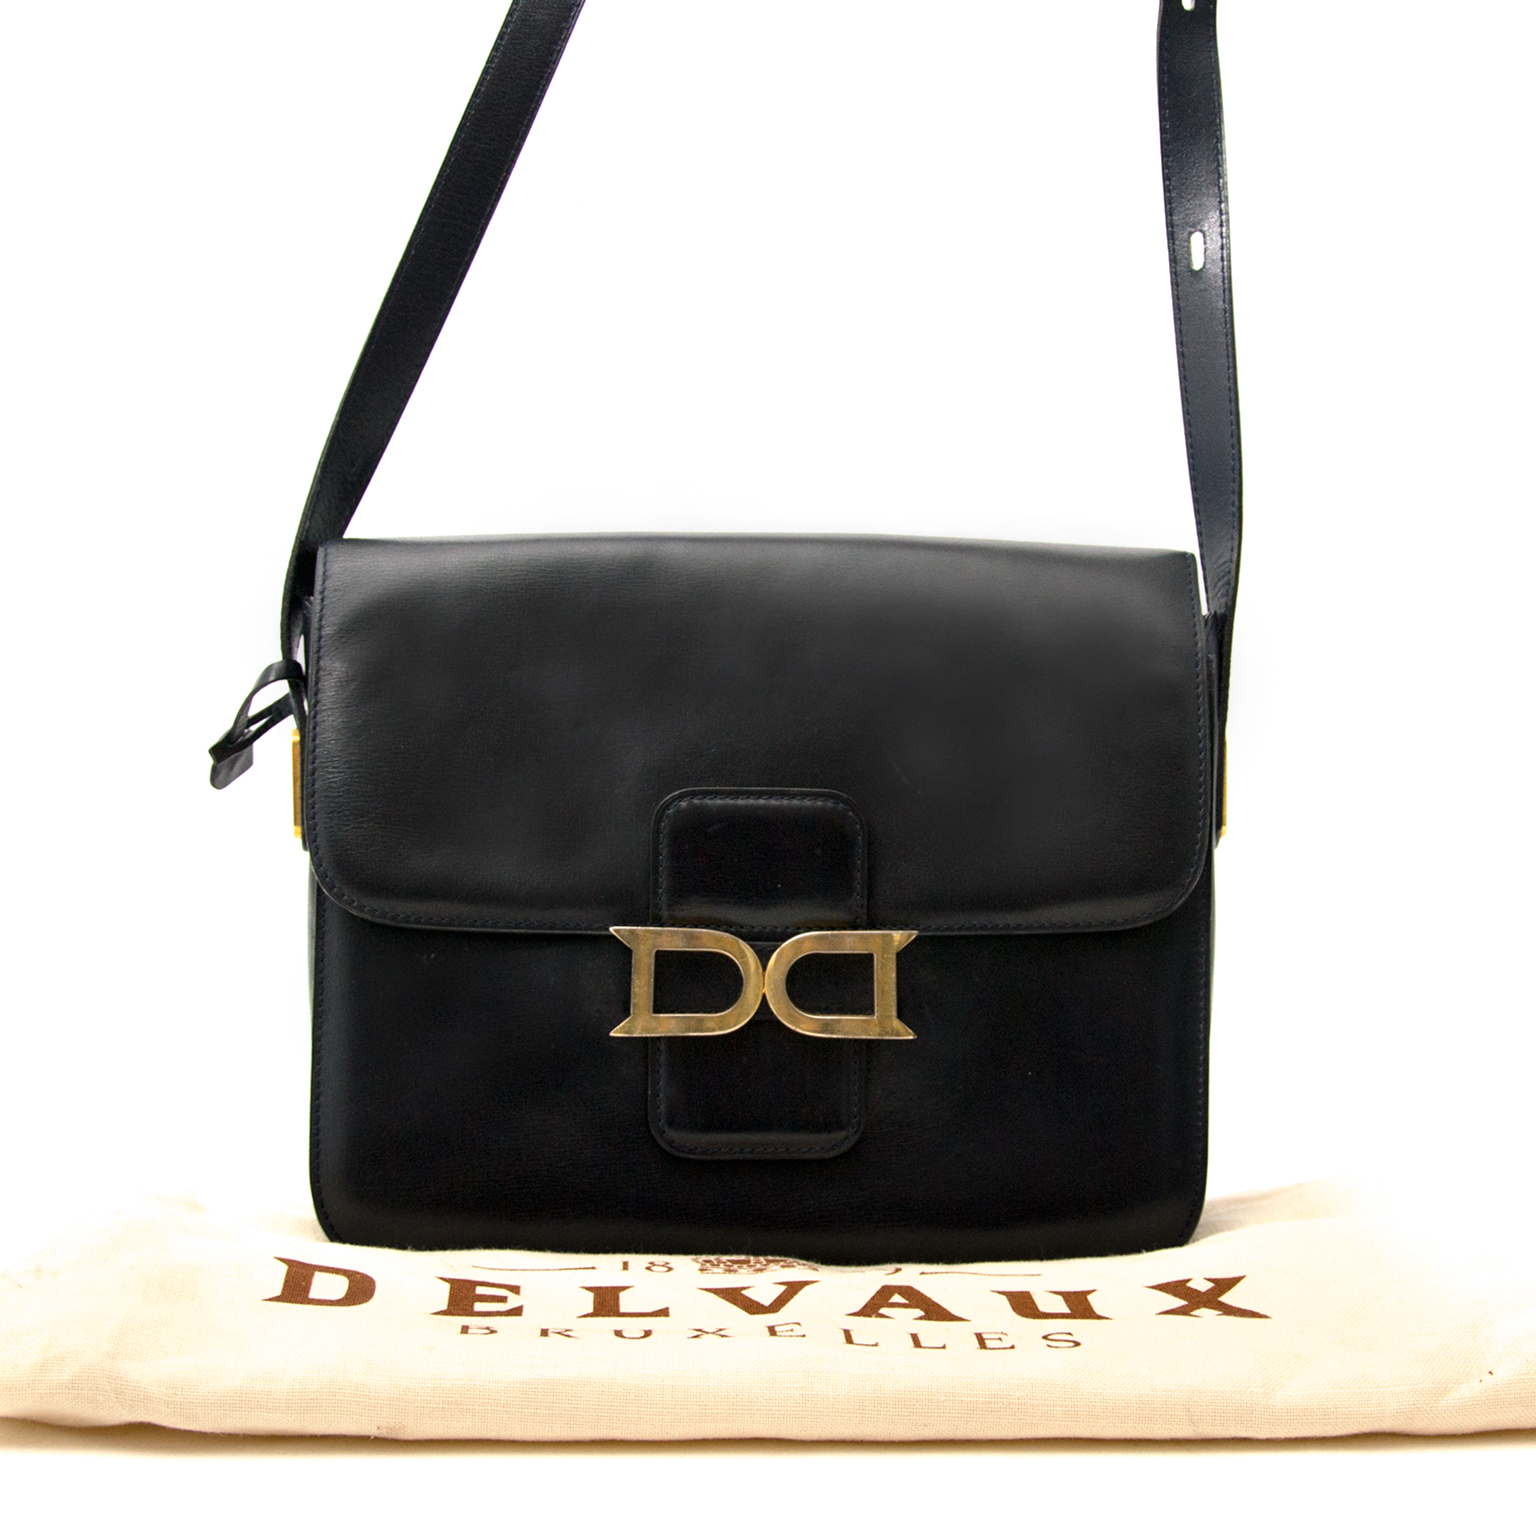 We buy and sell your secondhand Delvaux Navy Blue Bourgogne Bag for the best price